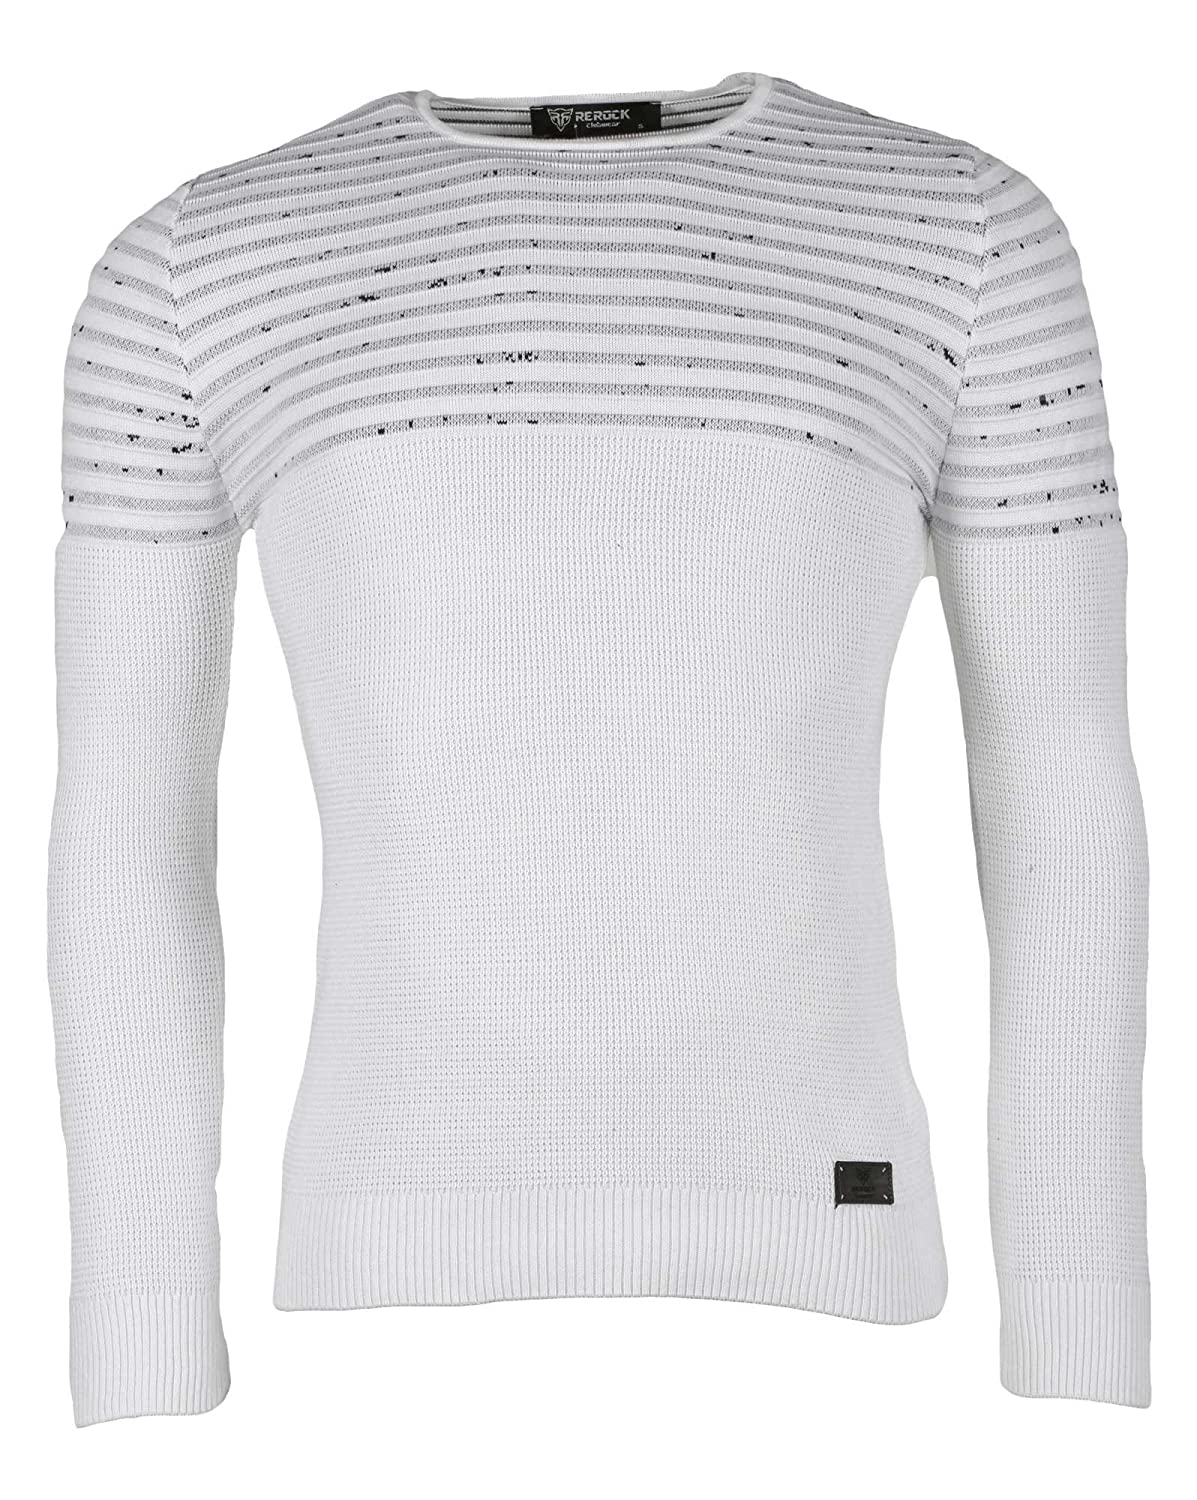 BLZ jeans - fine white sweater with contrasting ribs